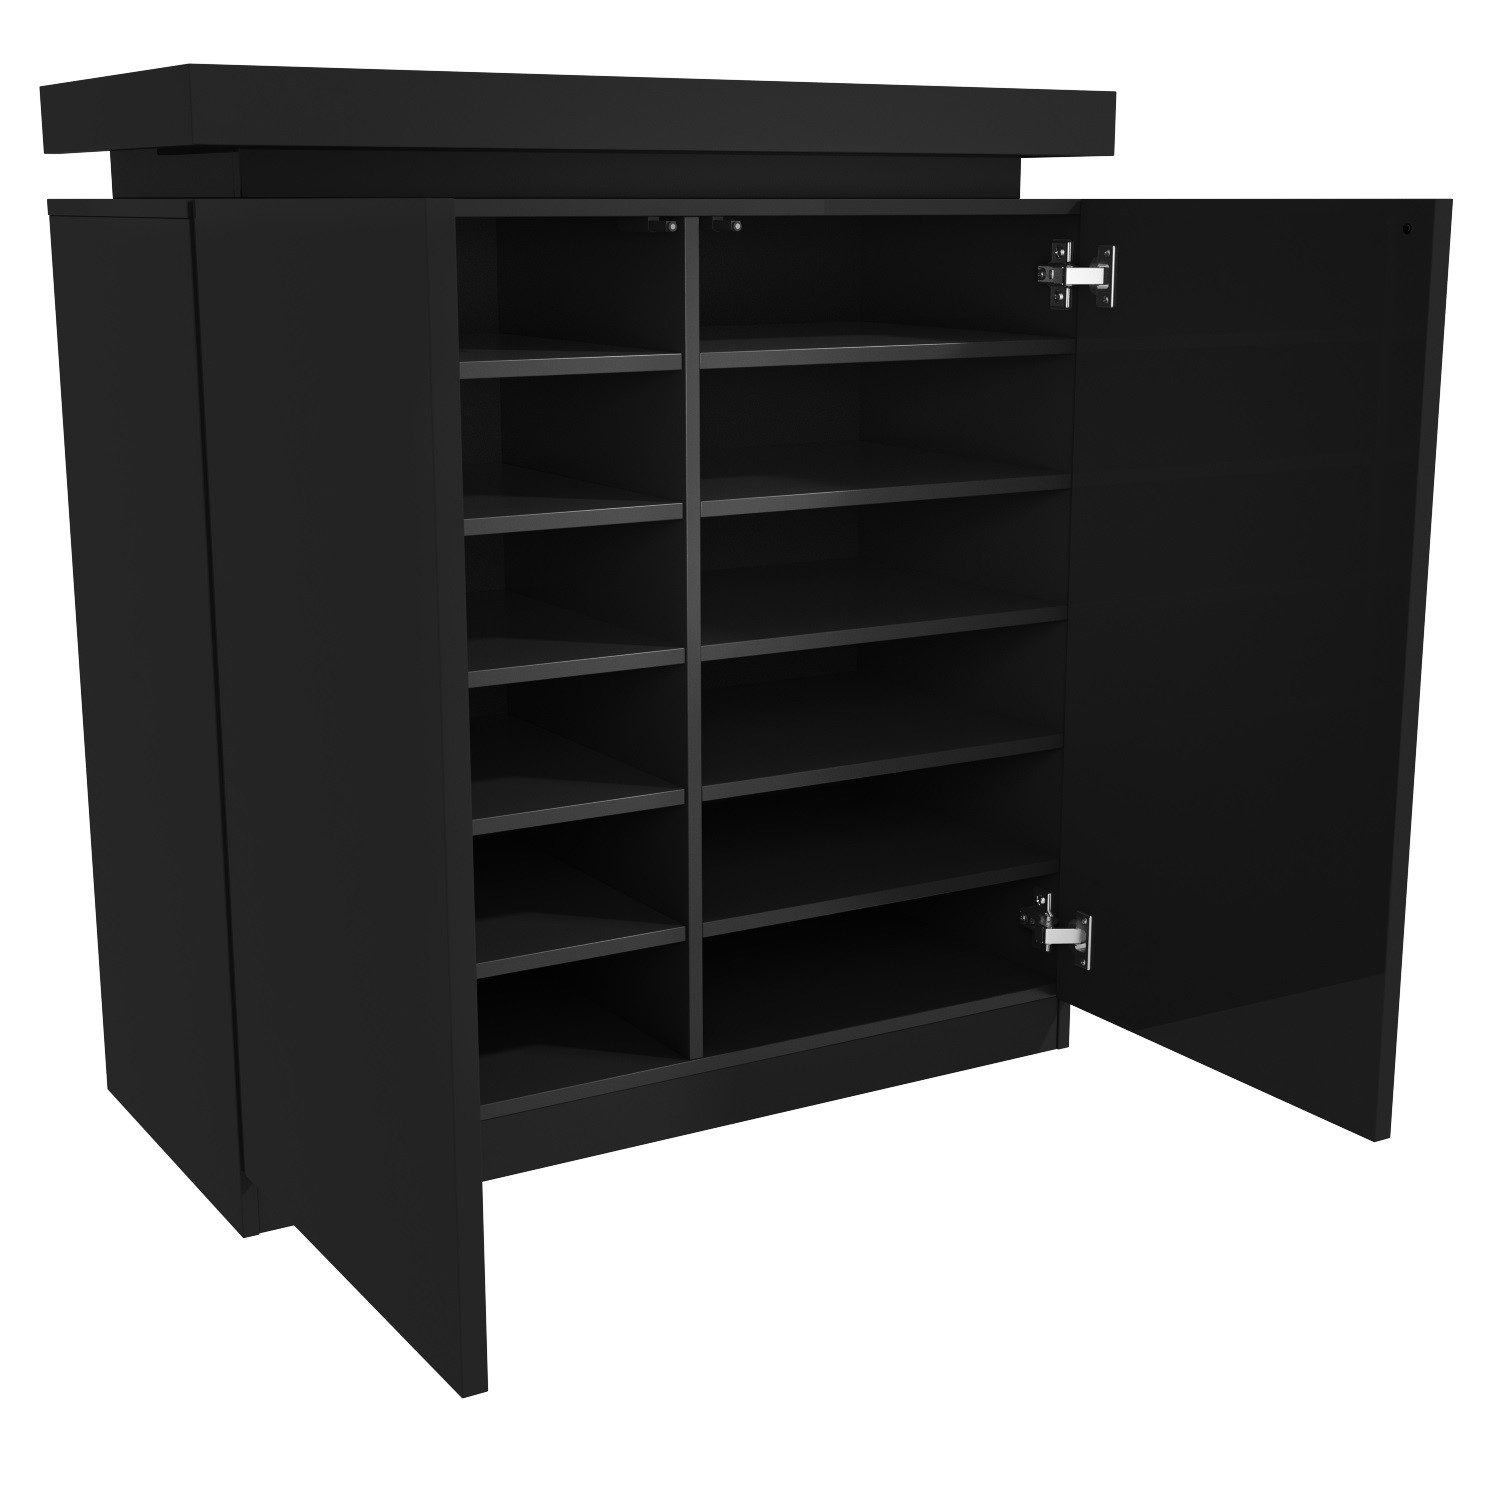 Black Gloss Shoe Cabinet with LED - 24